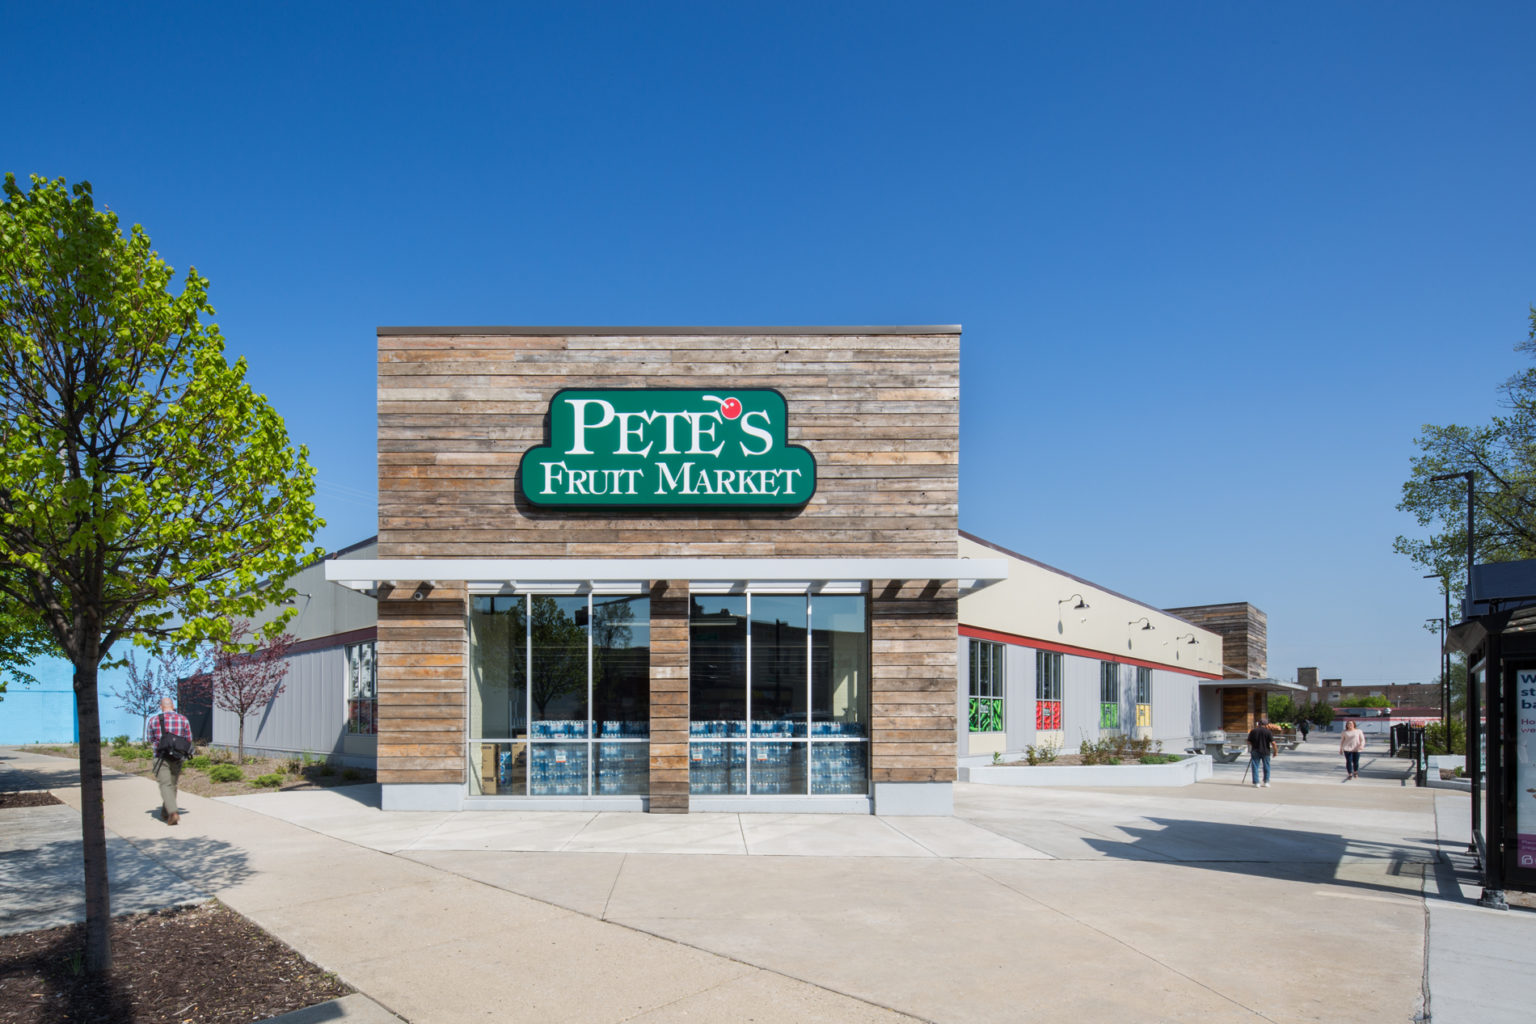 Petes_Fruit_Market_Enberg_Anderson_Ryan_Hainey_Photography_Web_003